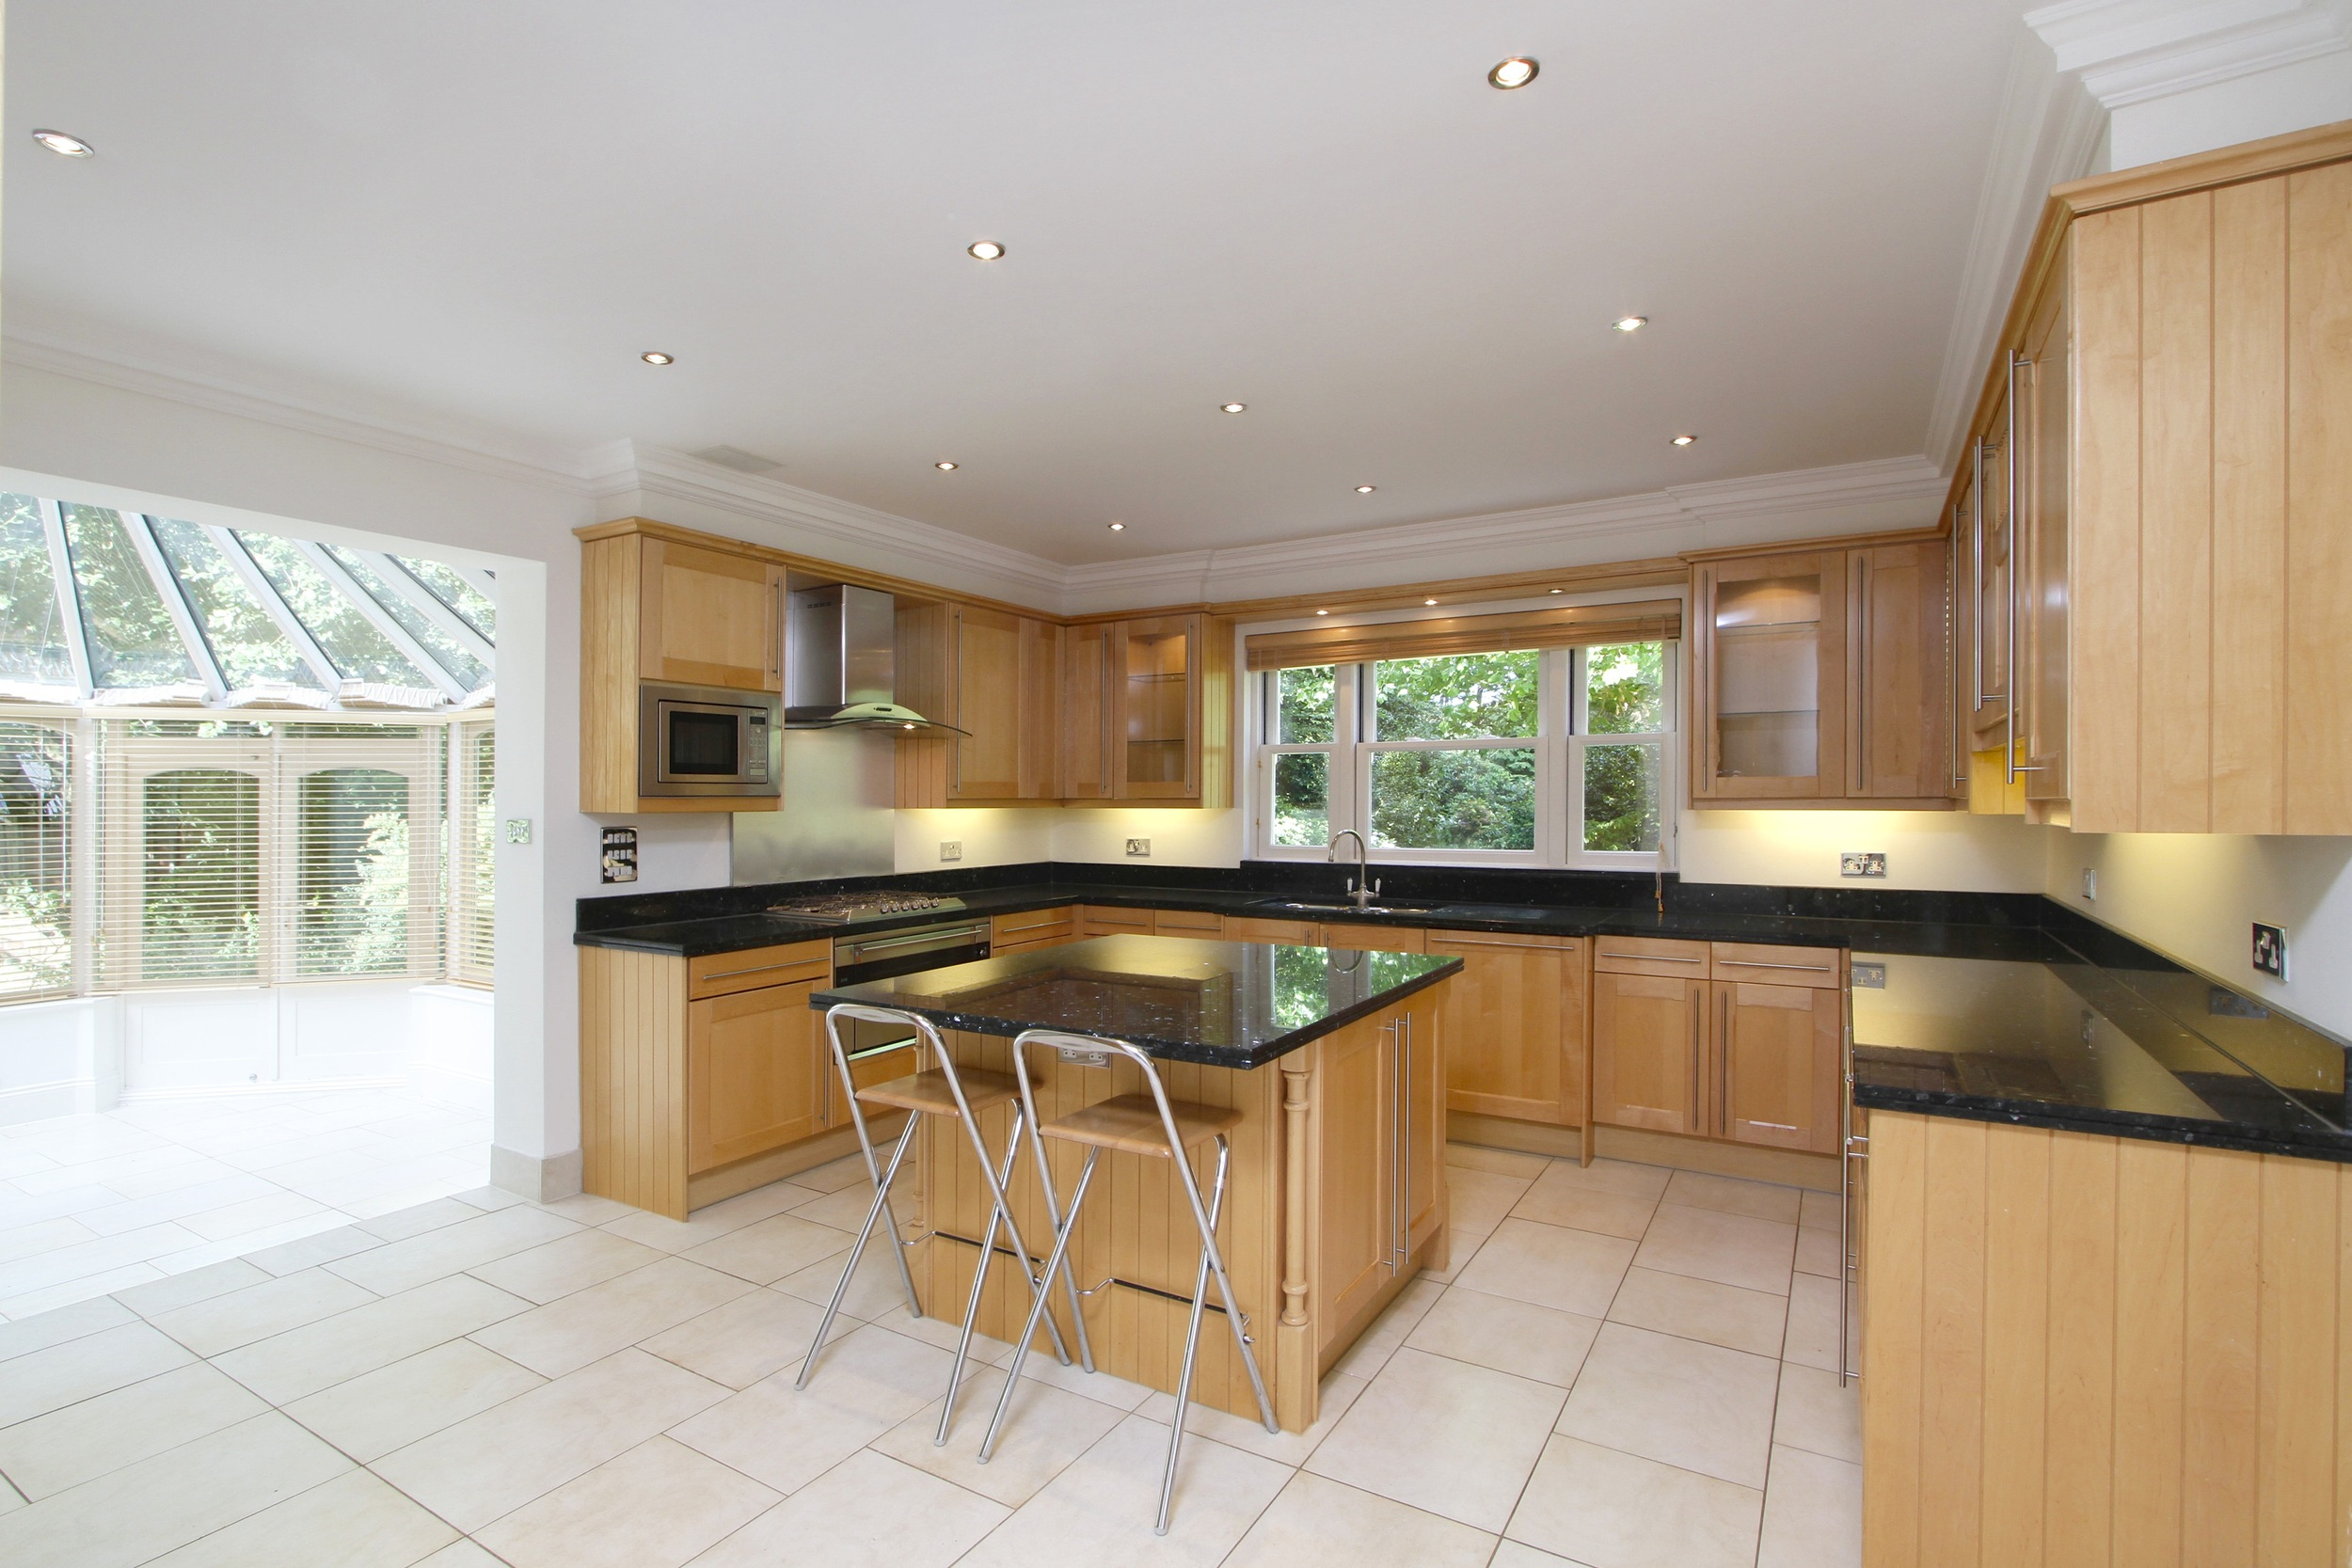 11 Coombe Ridings - Kitch.jpg